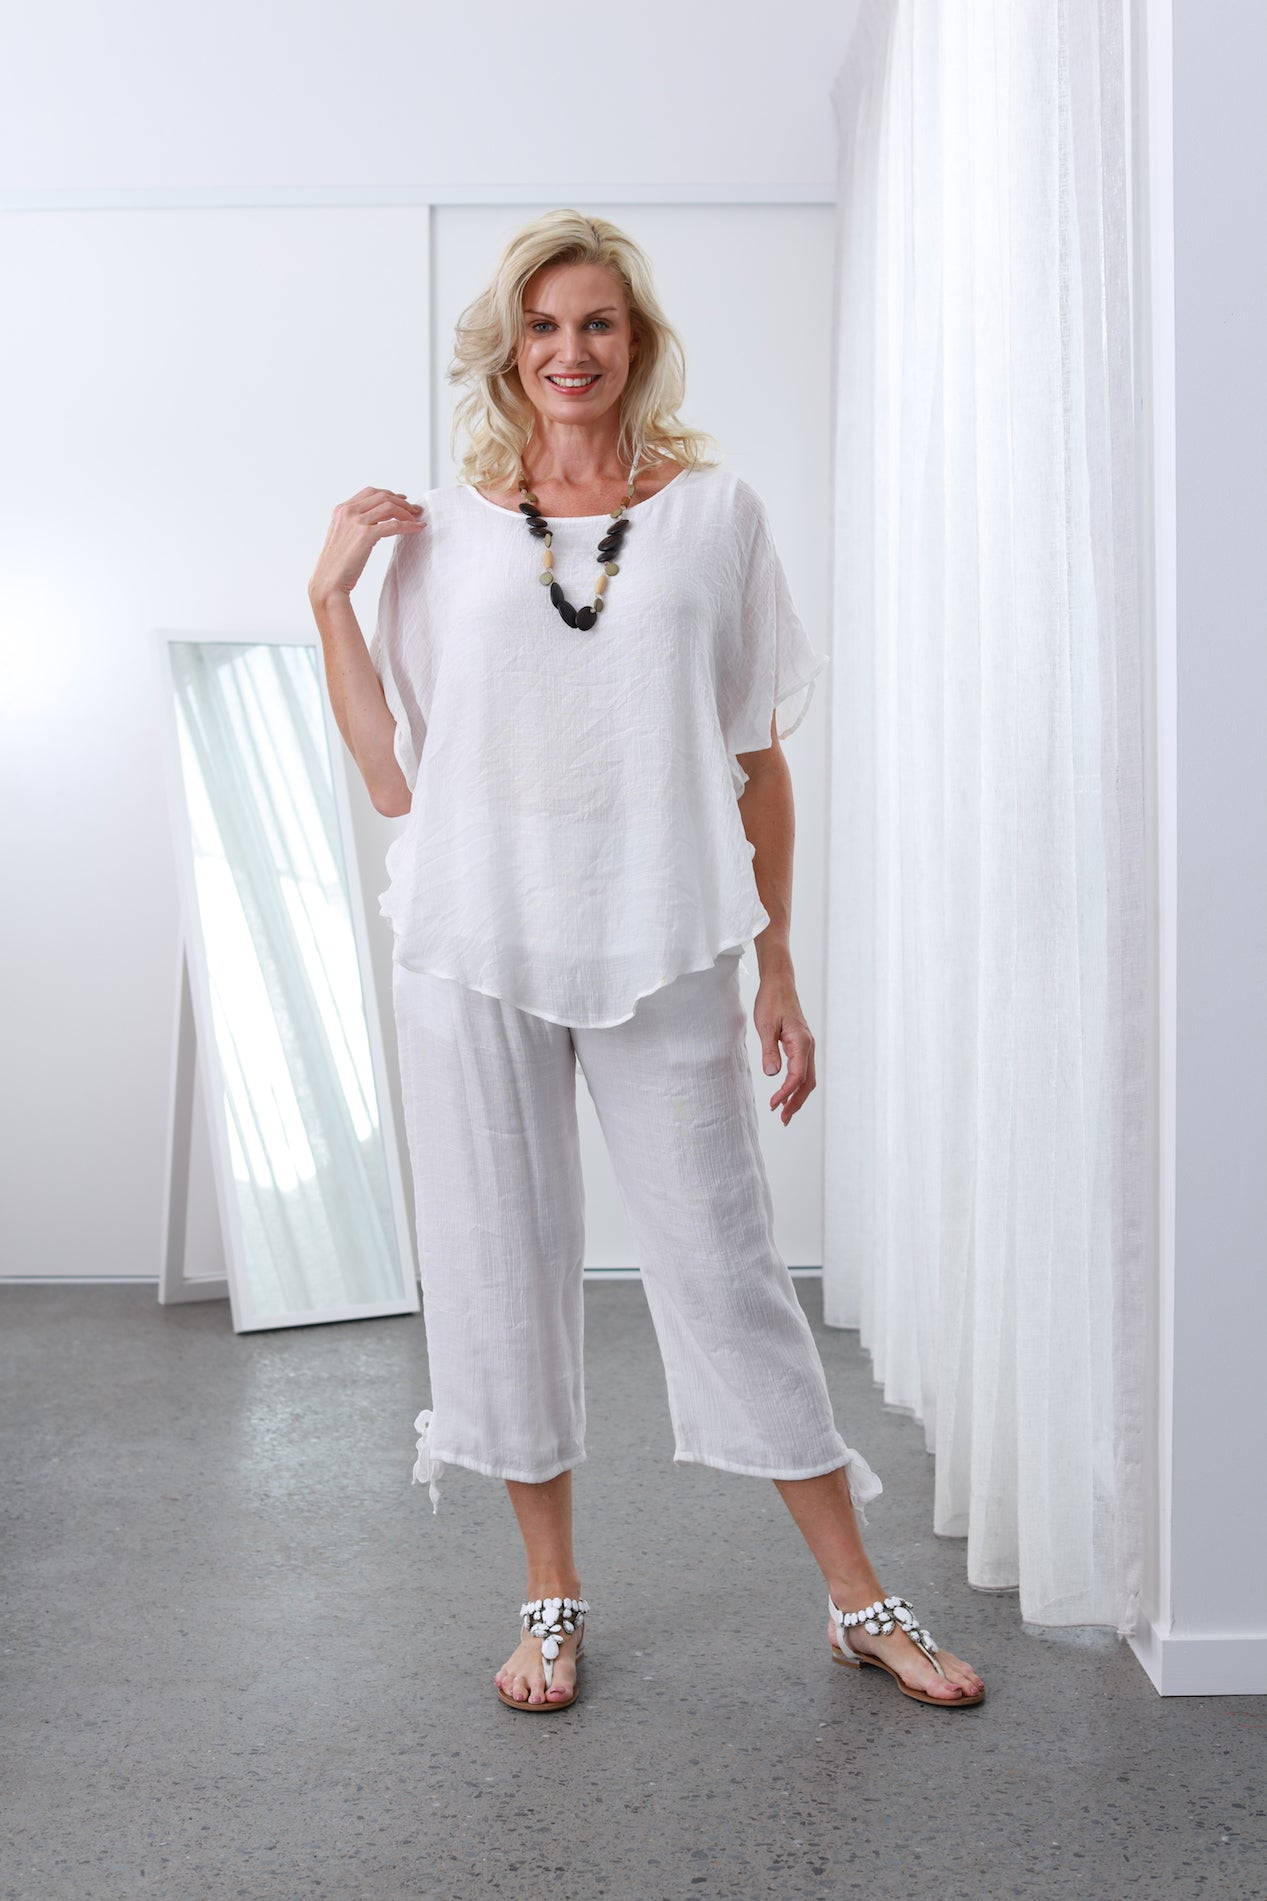 Bamboo Stylish White Top with double lining